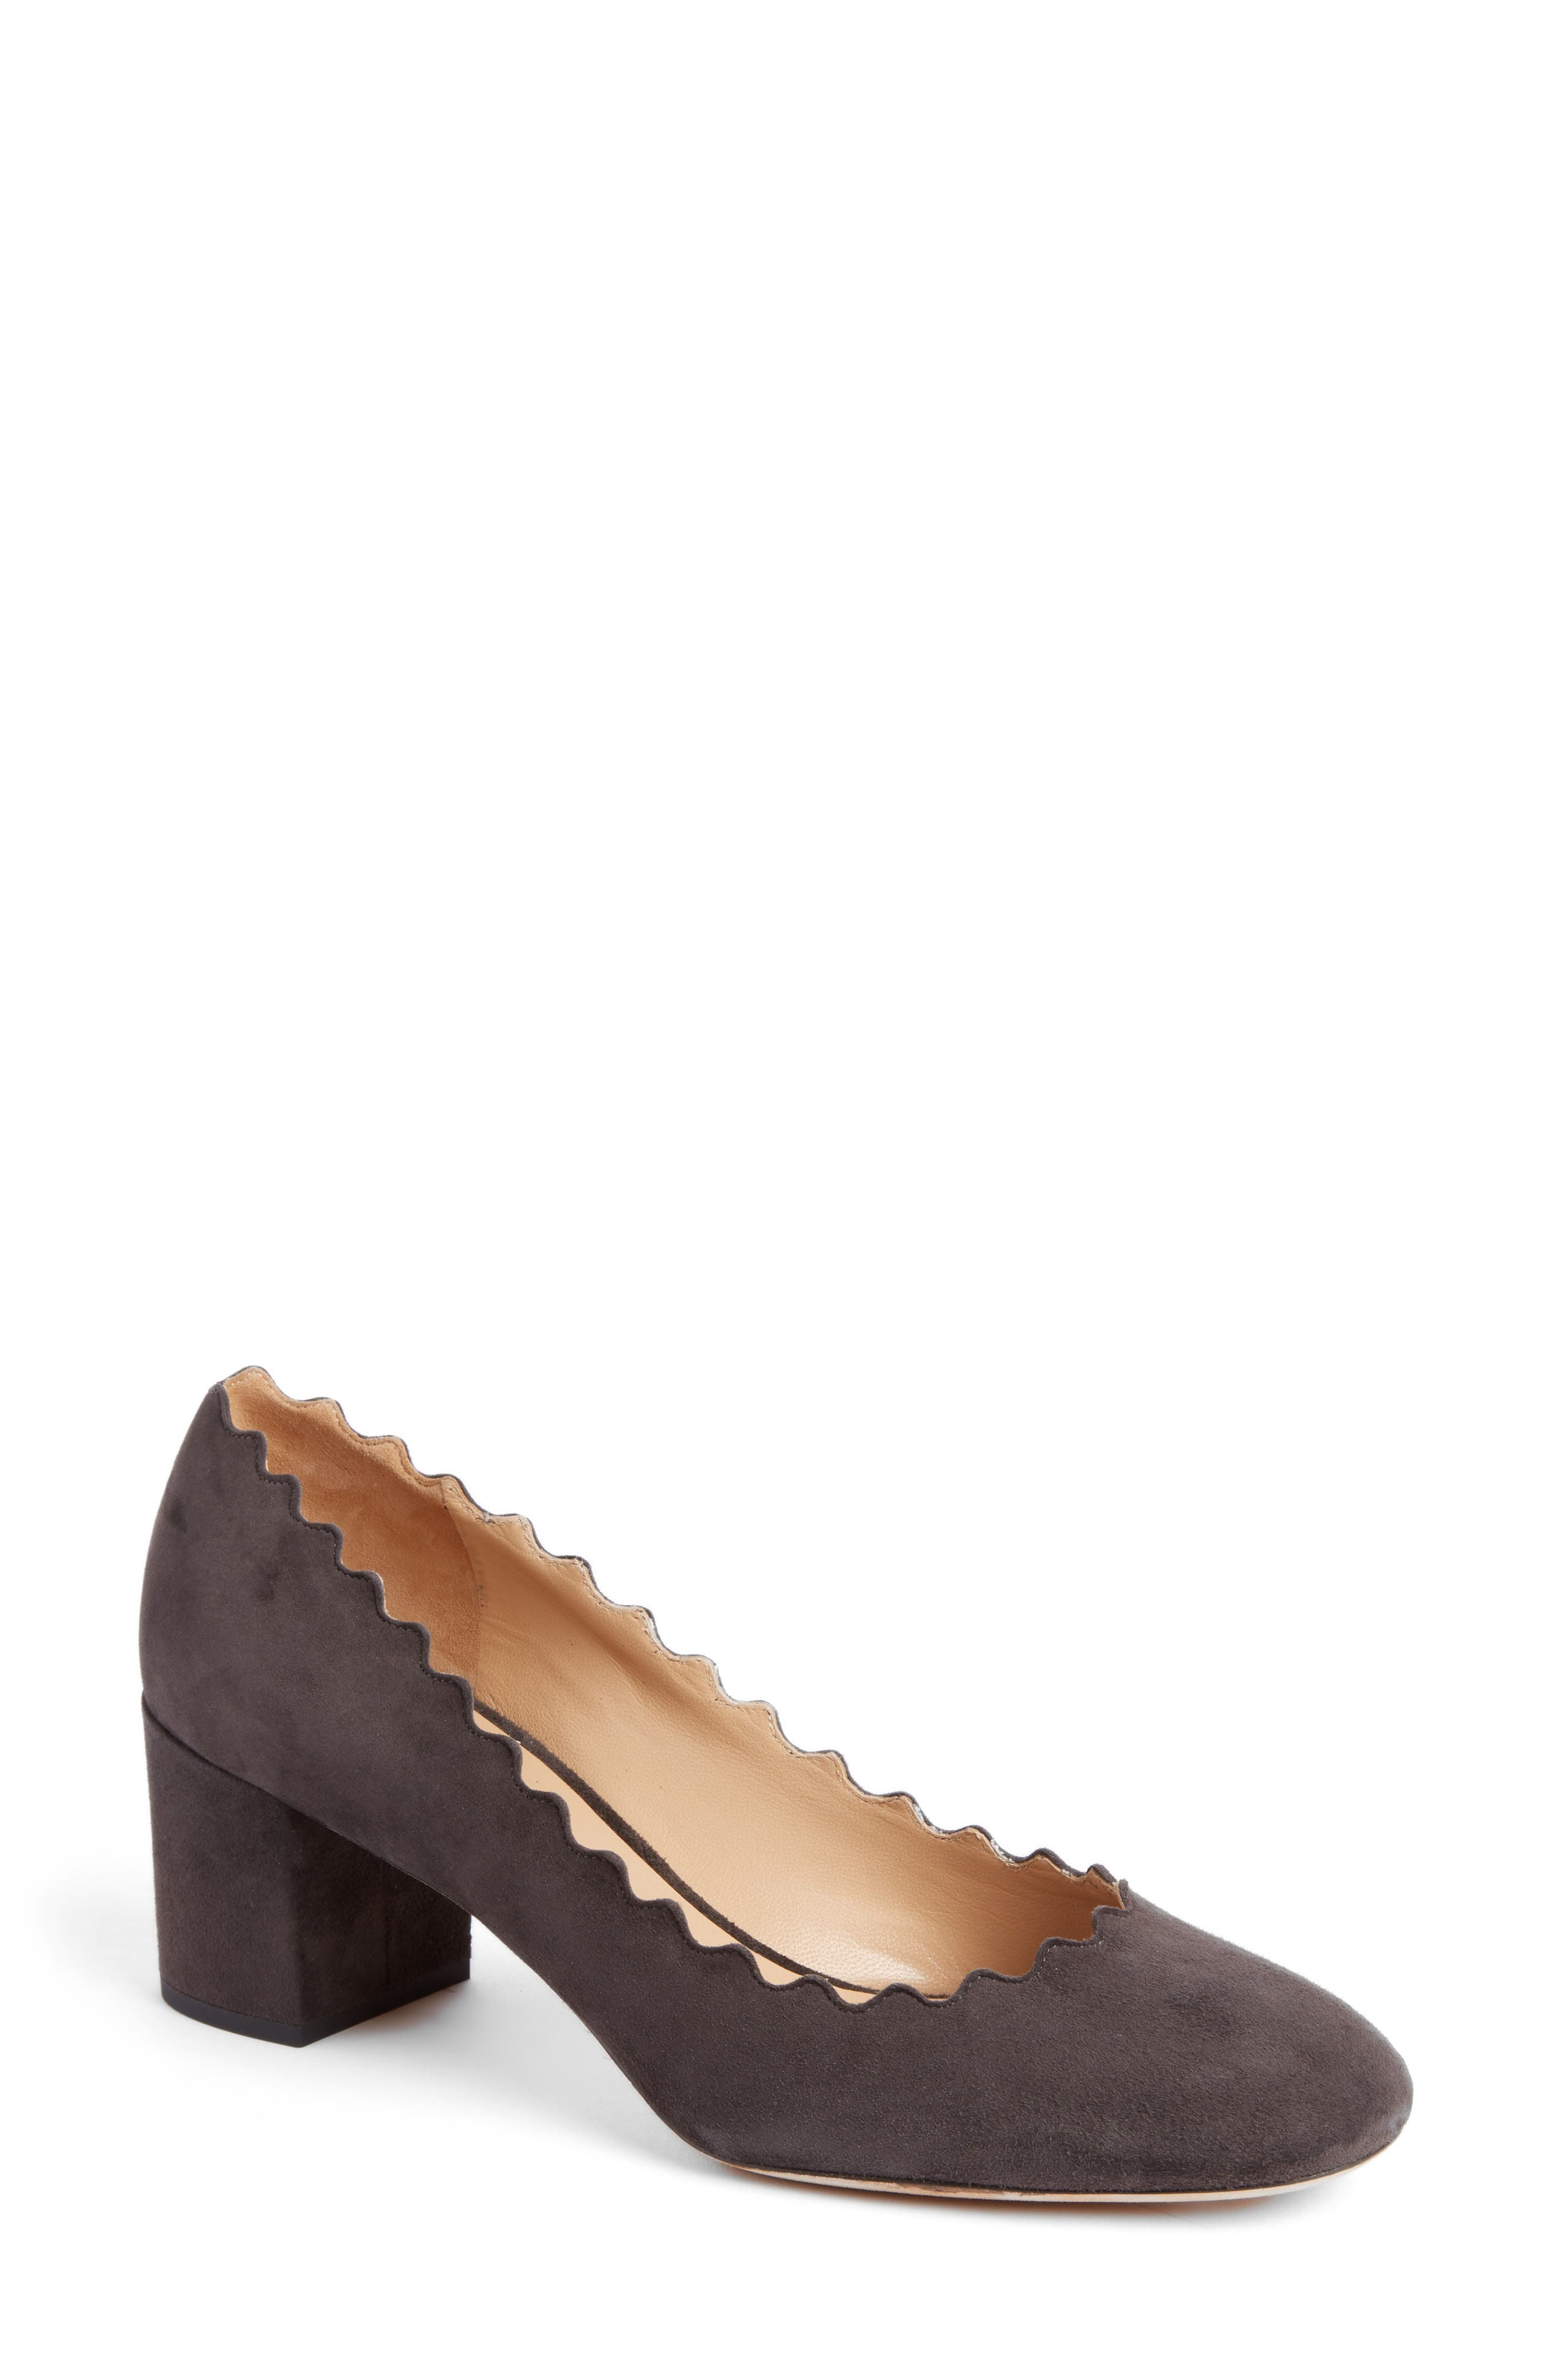 9b24506c7012 Women s Chloé Pumps